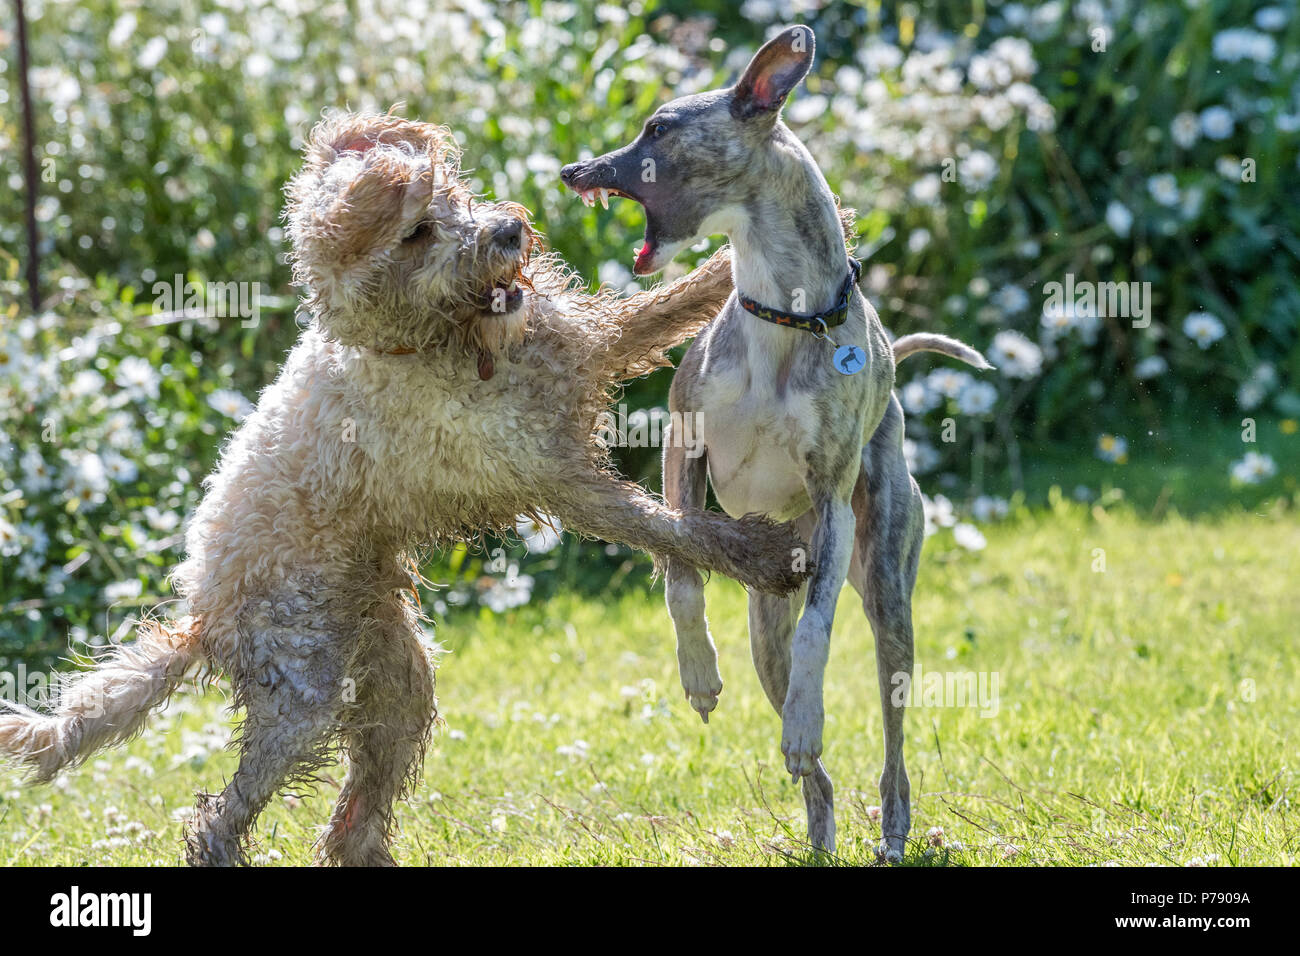 Cockapoo and Whippet dogs play fighting. - Stock Image